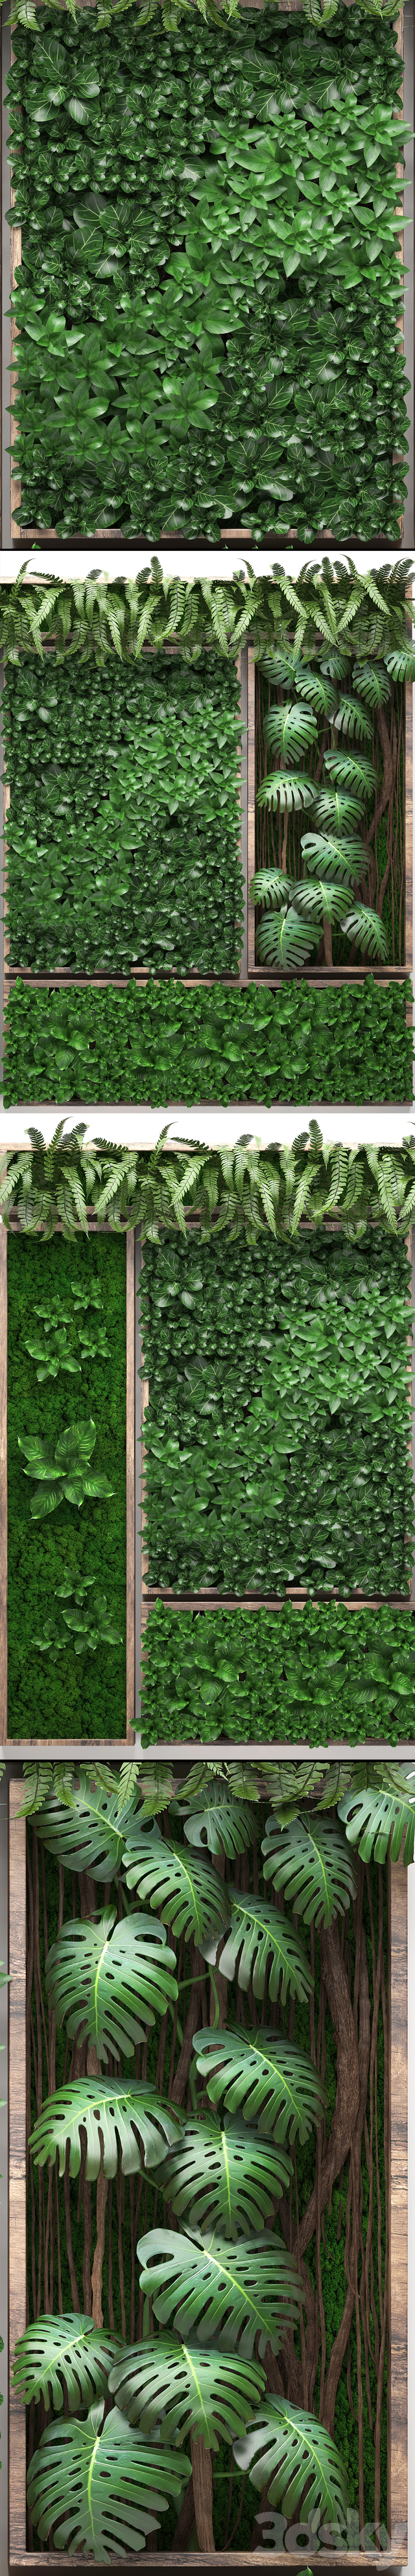 Vertical garden 22. Five separate modules